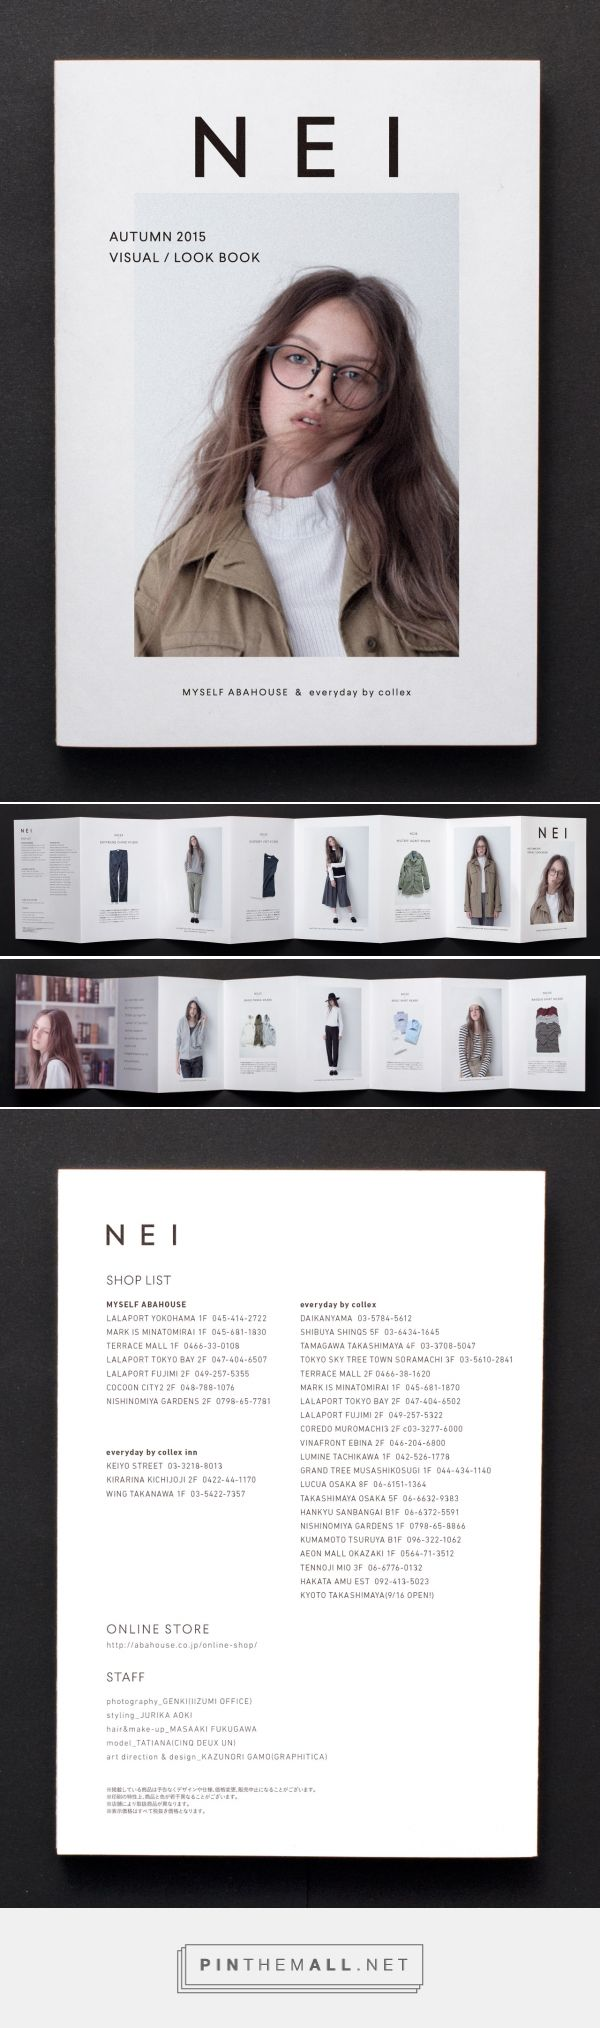 NEI ABAHOUSE : Autumn Catalogue 2015 | GRAPHITICA Inc. - created via https://pinthemall.net